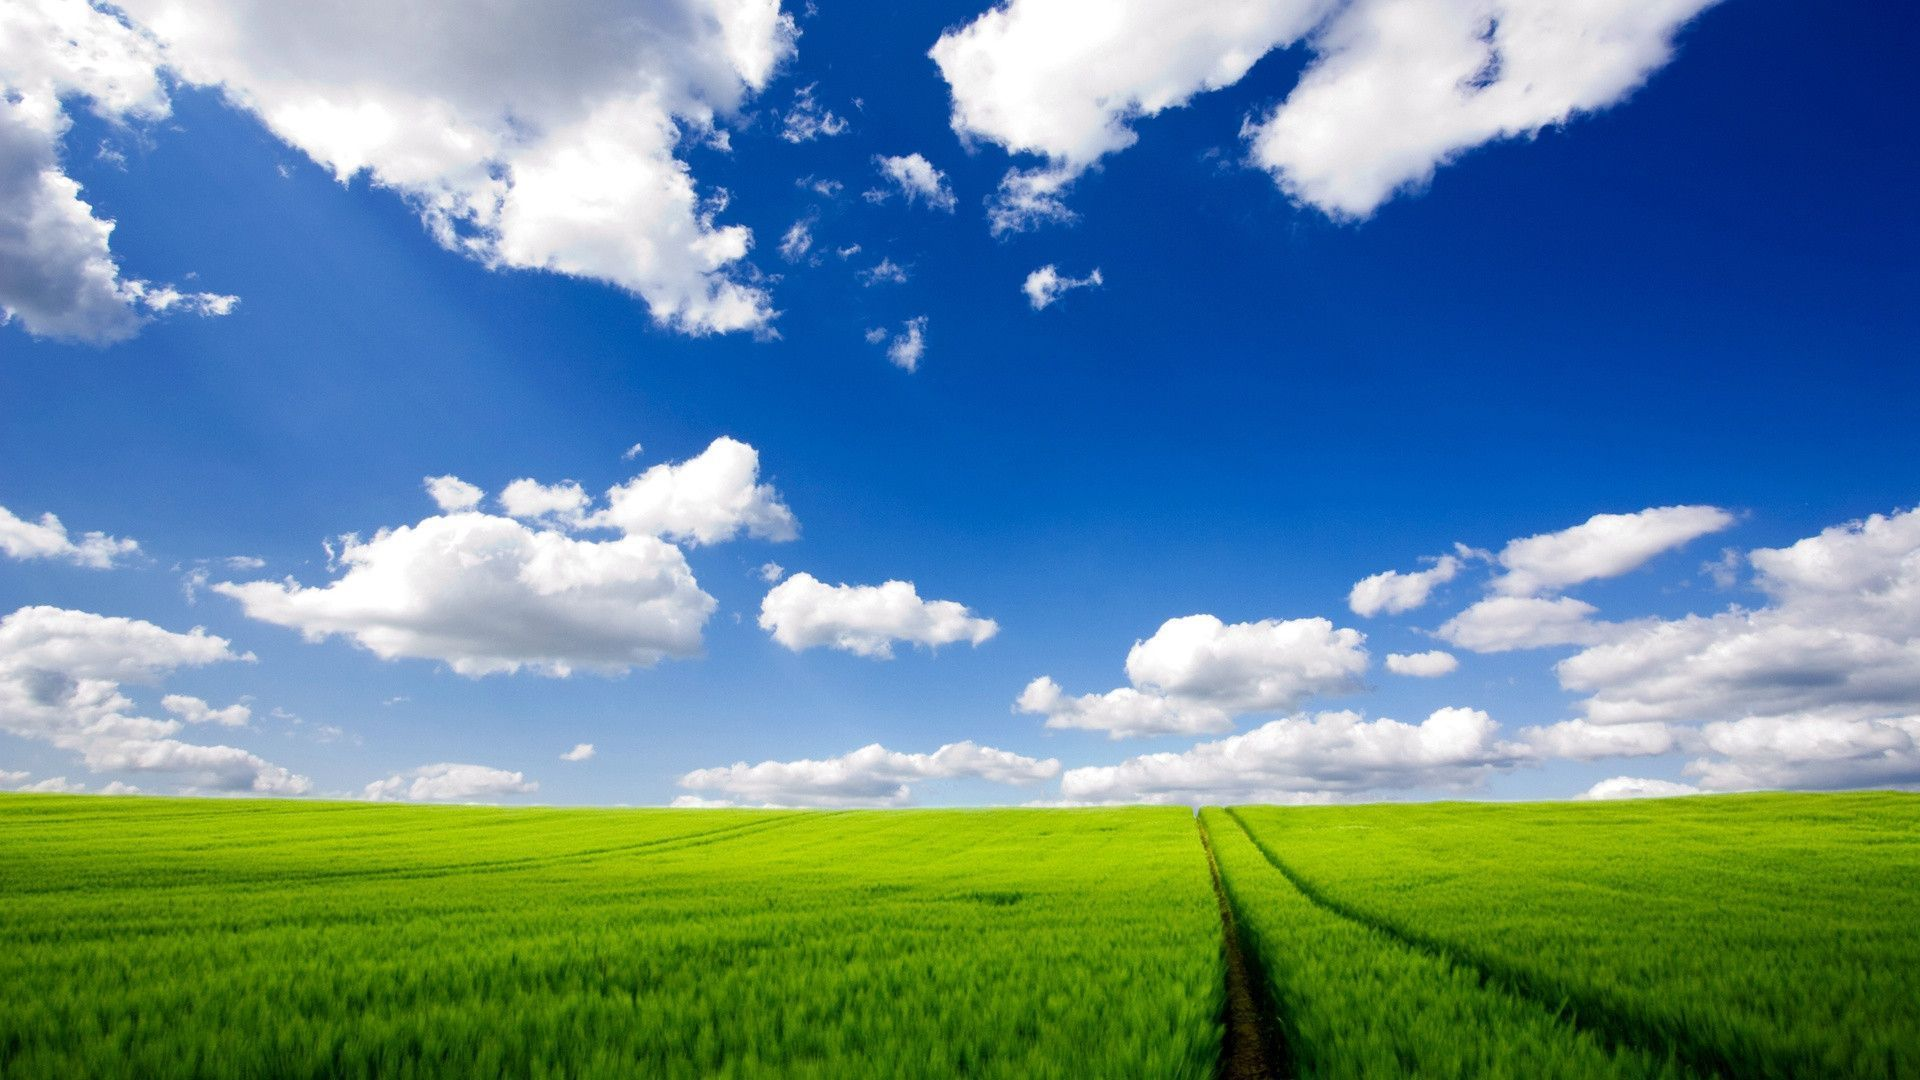 download hd windows xp wallpapers for free | wallpapers | pinterest